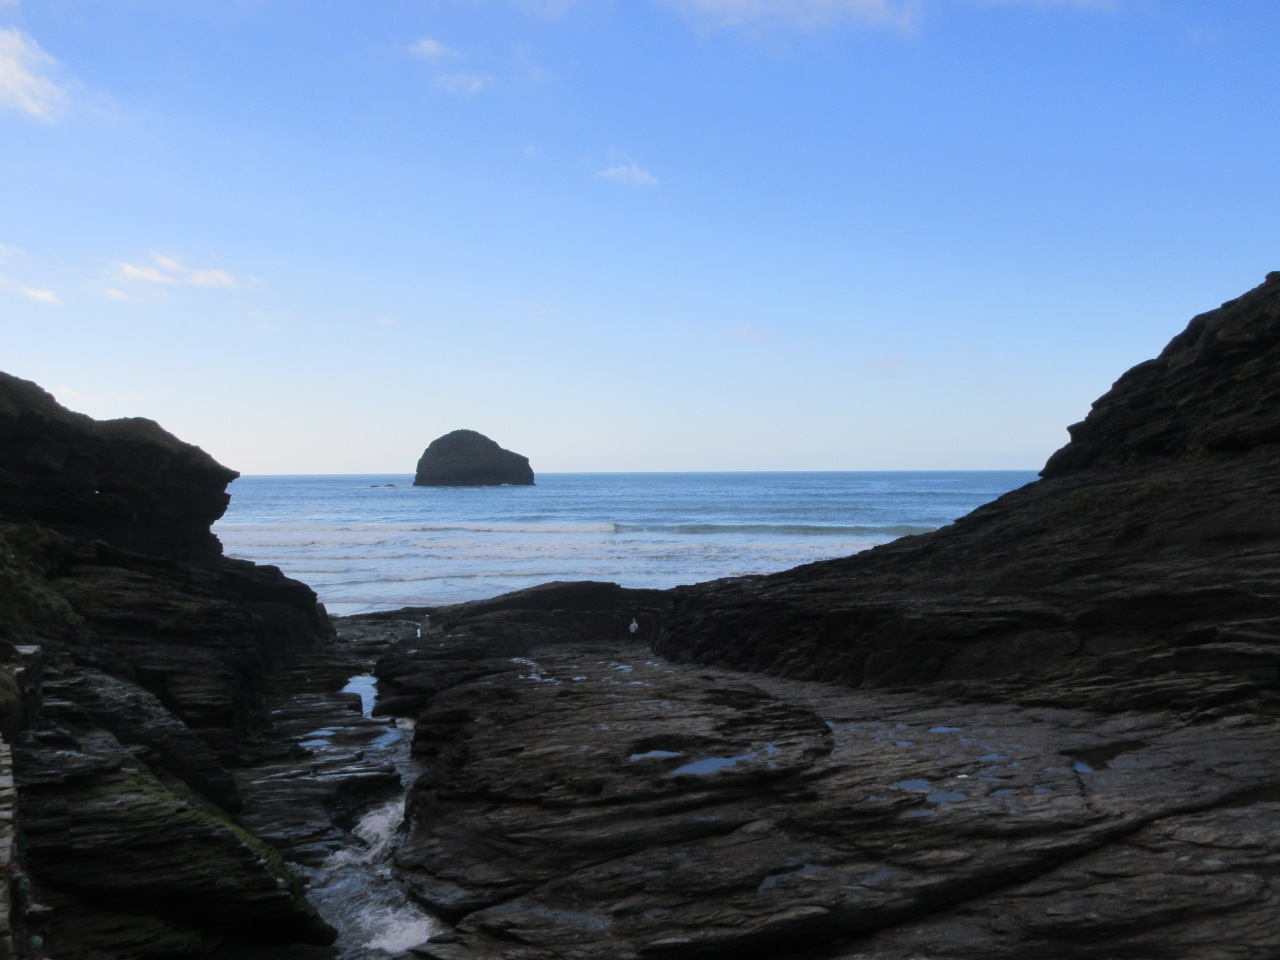 Tintagel to Trebarwith Strand: crap castle and dog head island